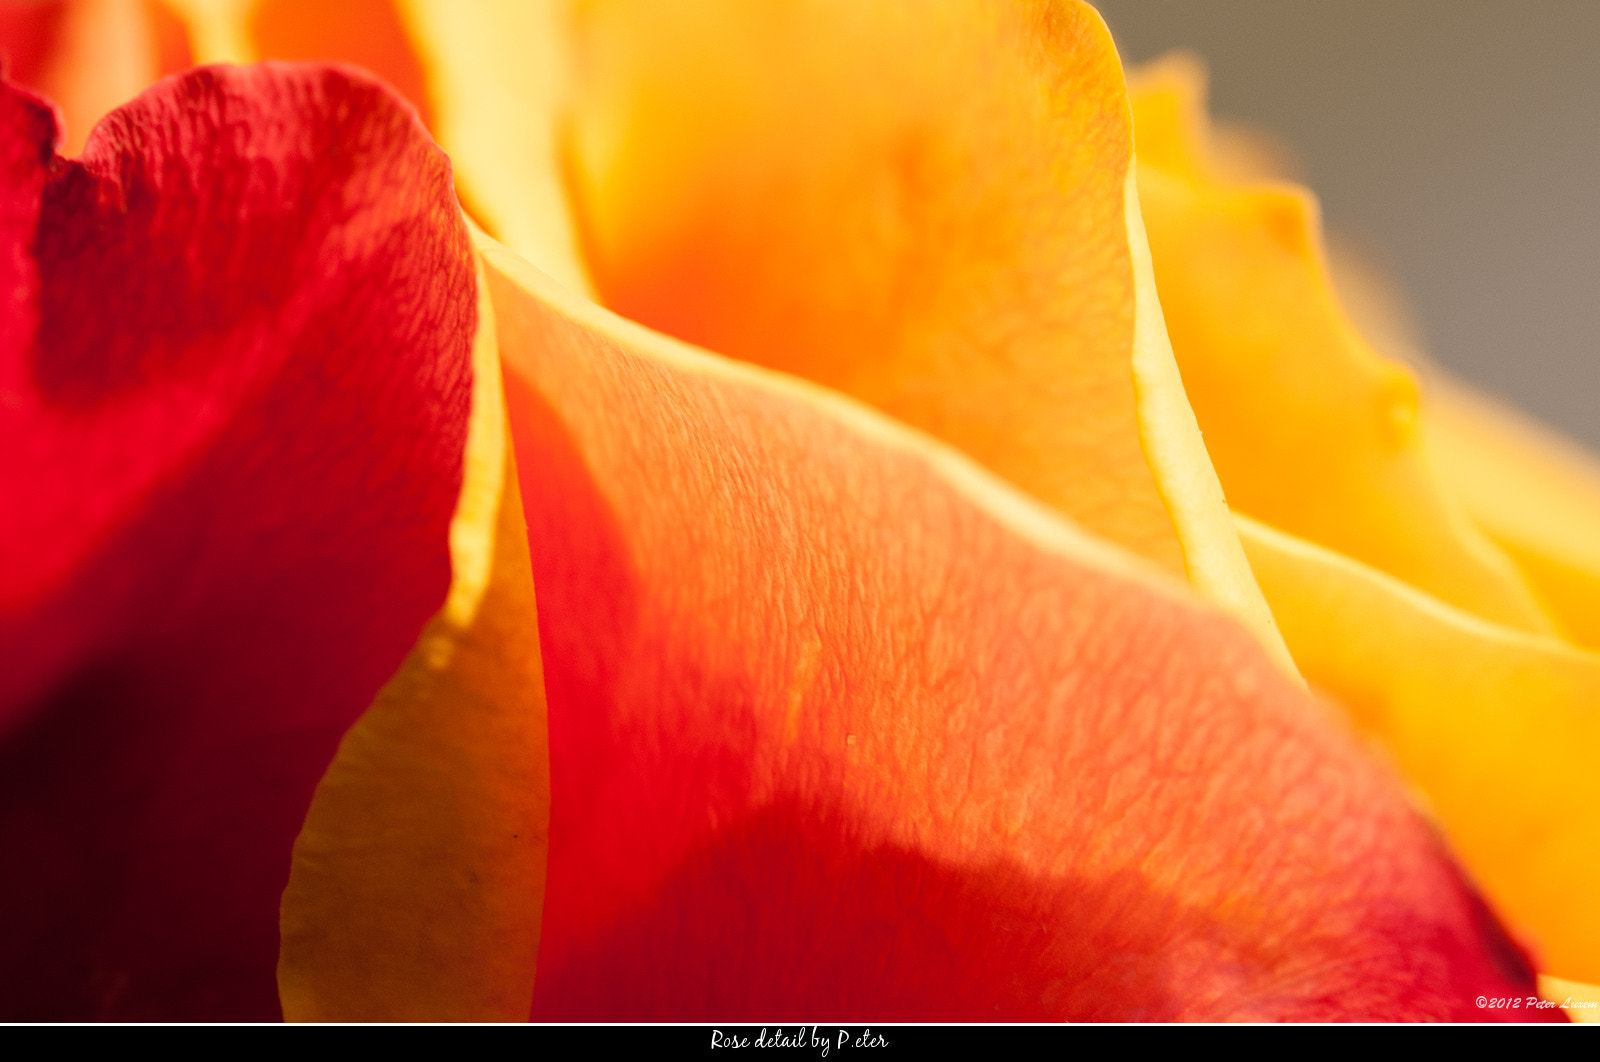 Photograph Rose detail by Peter Luxem on 500px